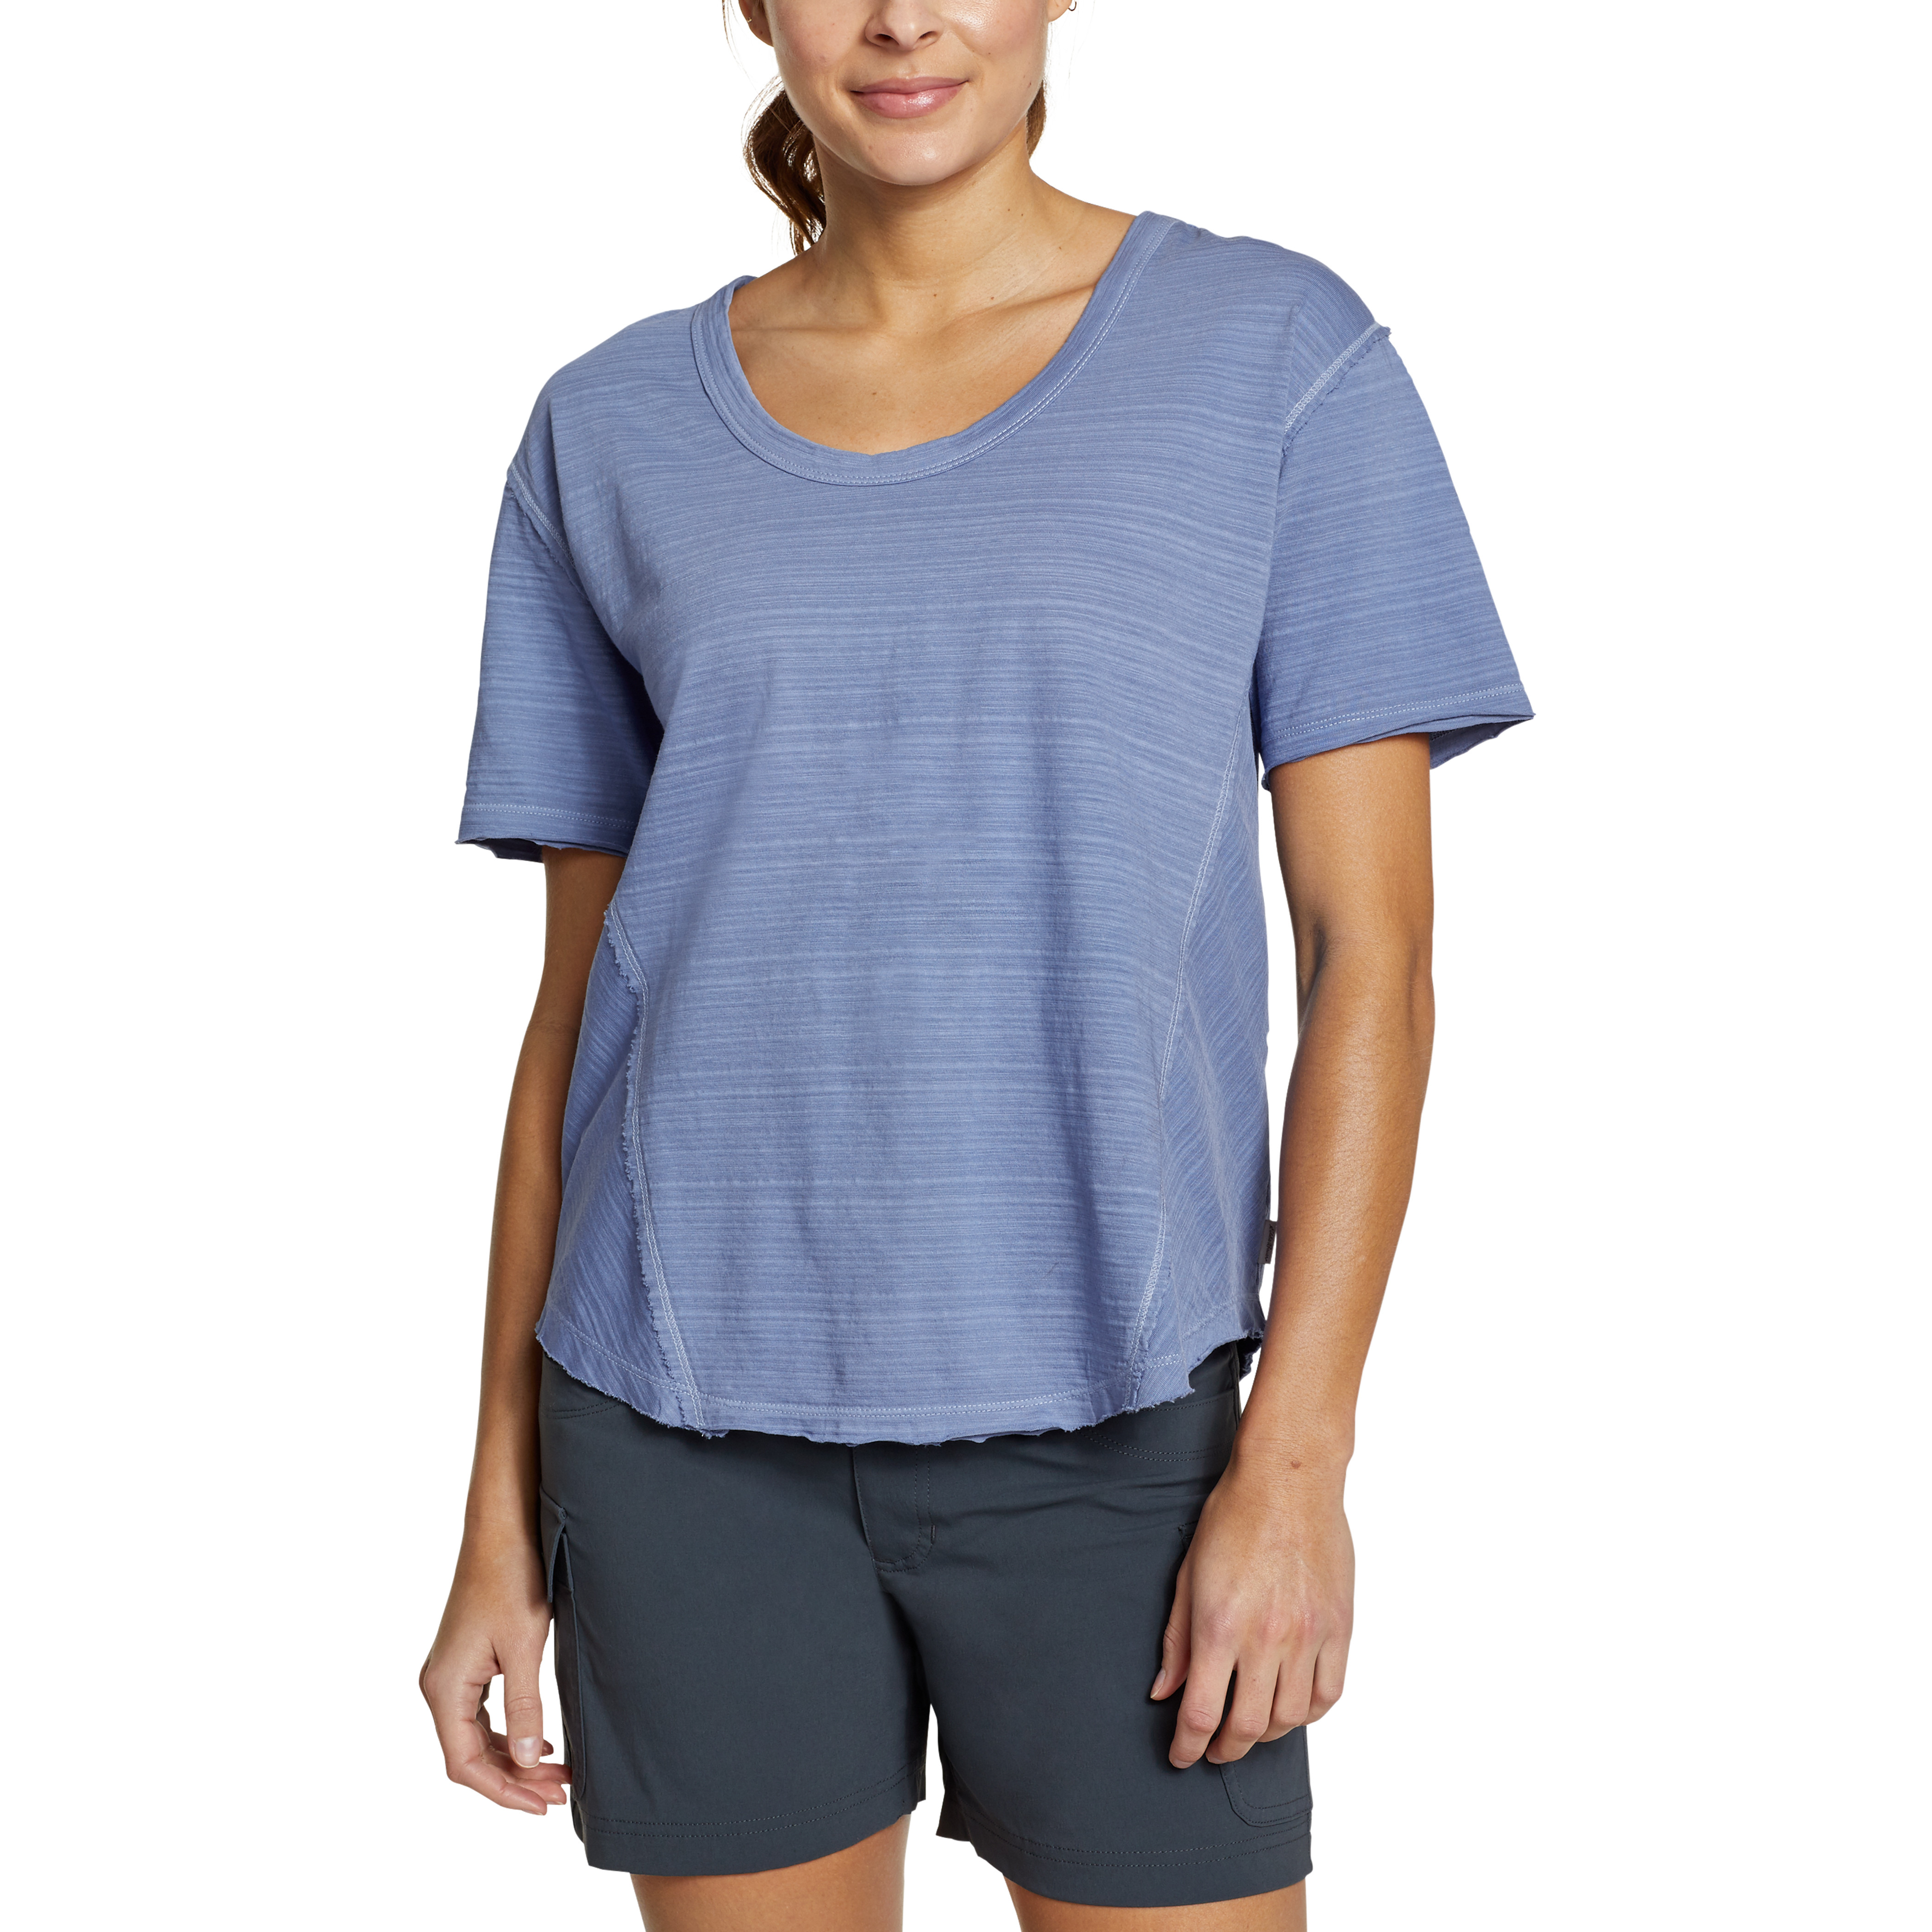 Imbracaminte Femei Eddie Bauer Adventure Elbow U-Neck Tee Metal Blue